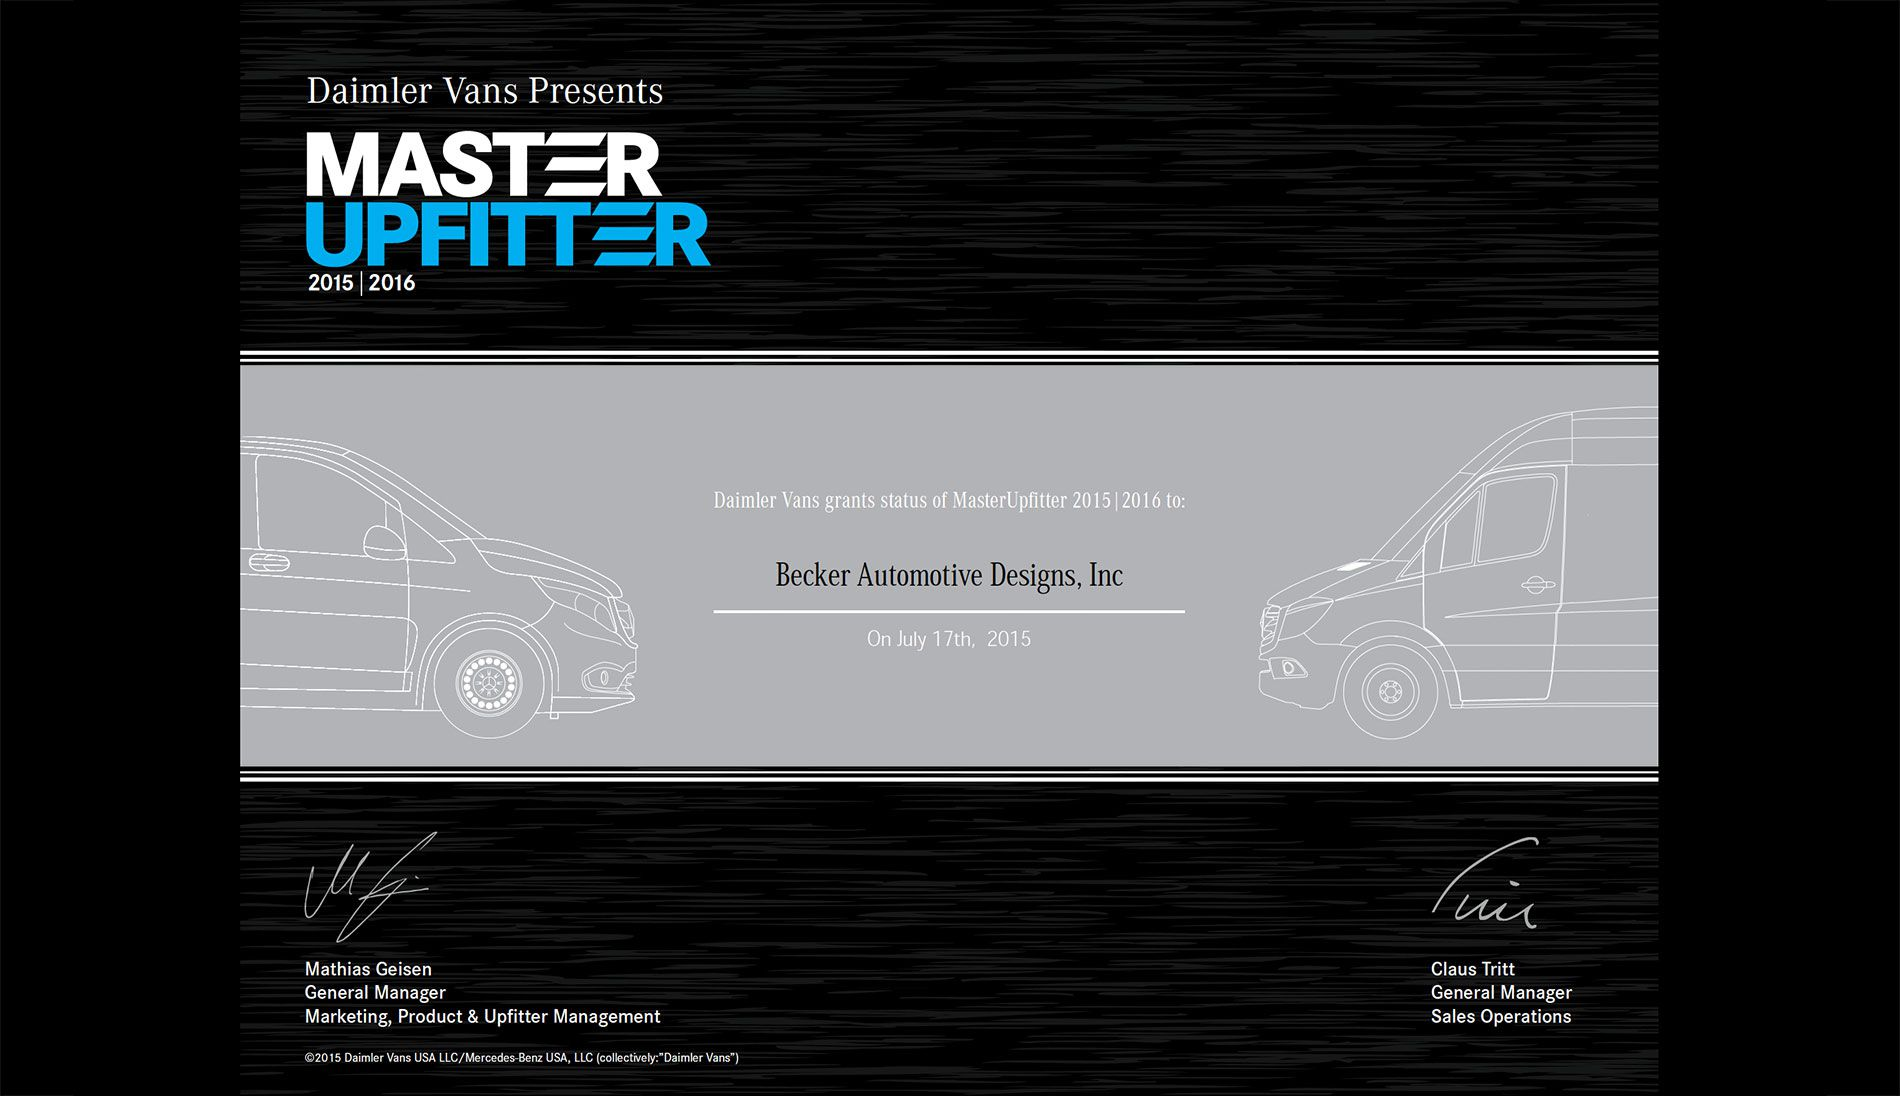 becker automotive design luxury transport coaches sprinter vanapproved master upfitter of mercedes benz manufactured sprinter vans the master upfitter designation is awarded by daimler to the select few firms who